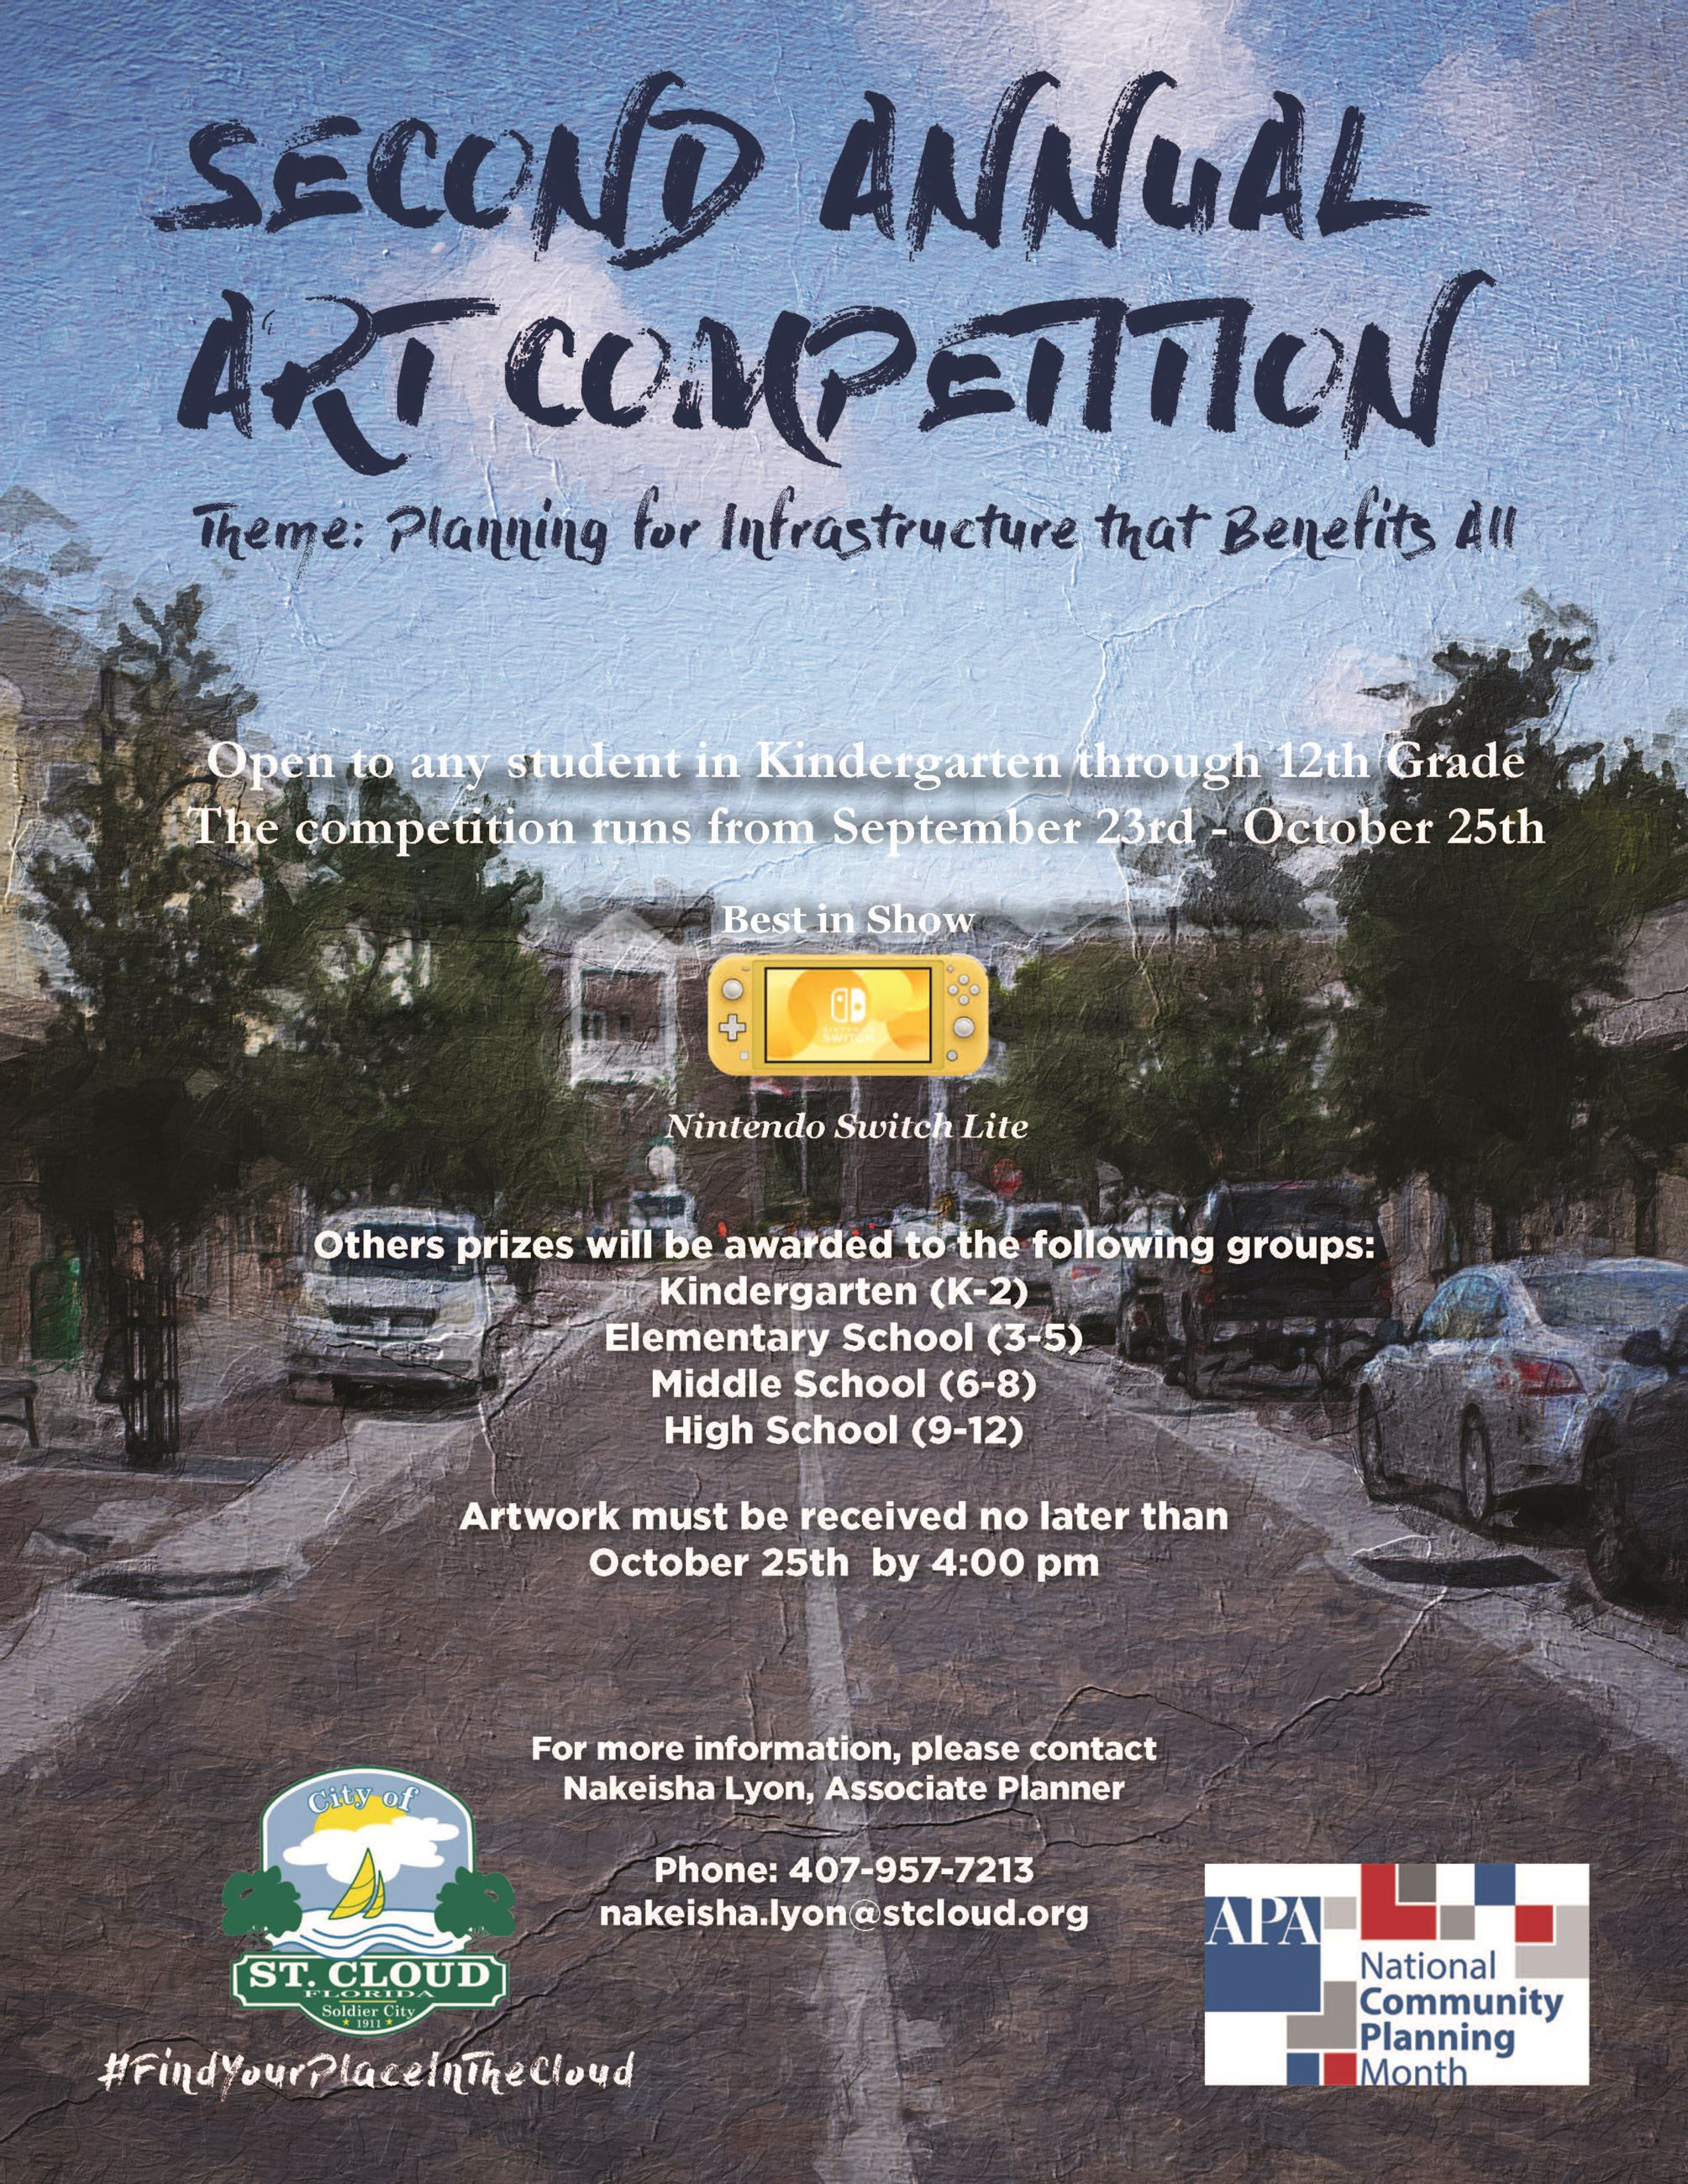 Art Competition for National Community Planning Month 2019 Poster